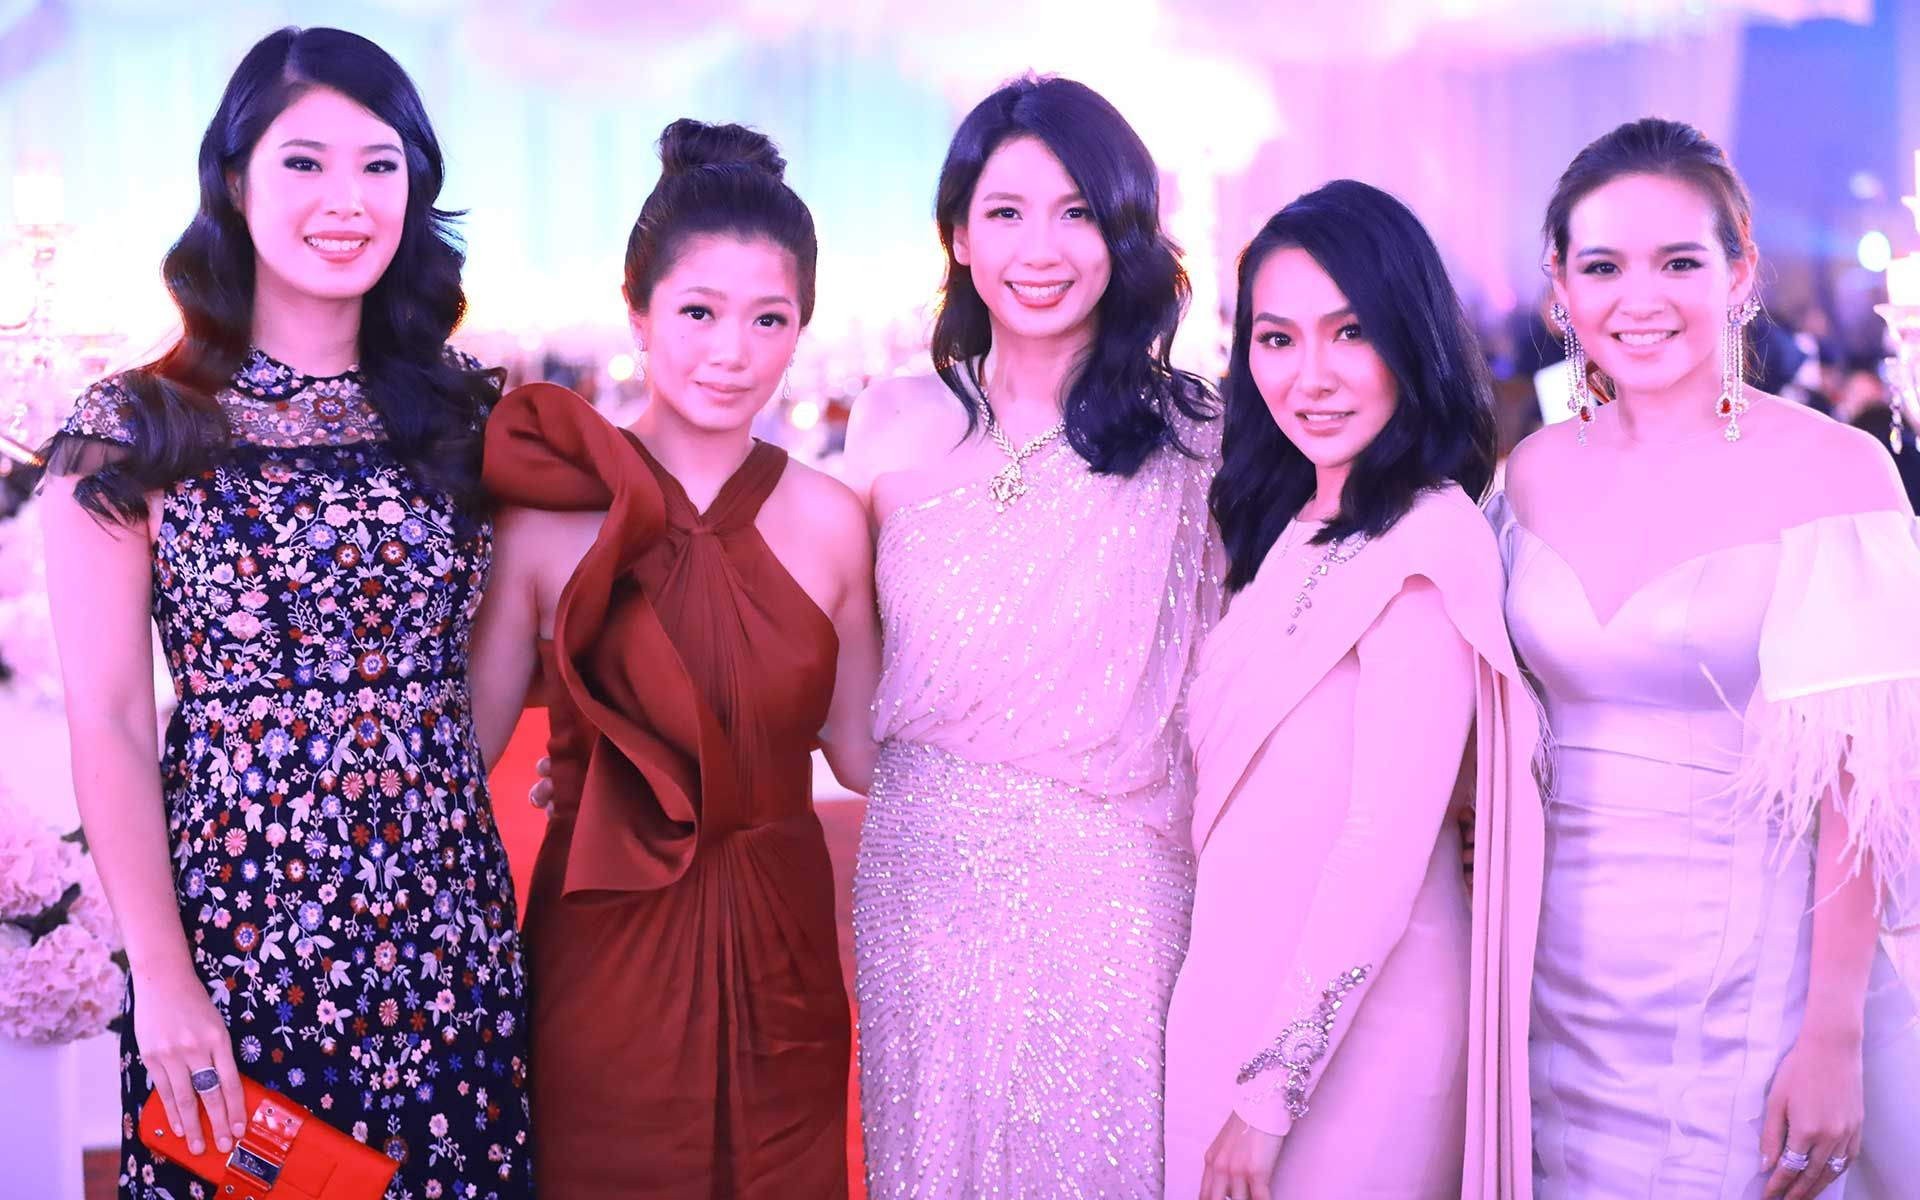 Juvene Goh, Lim May Jian, Diana Tan, Lee Yin Yen and Melissa Sin